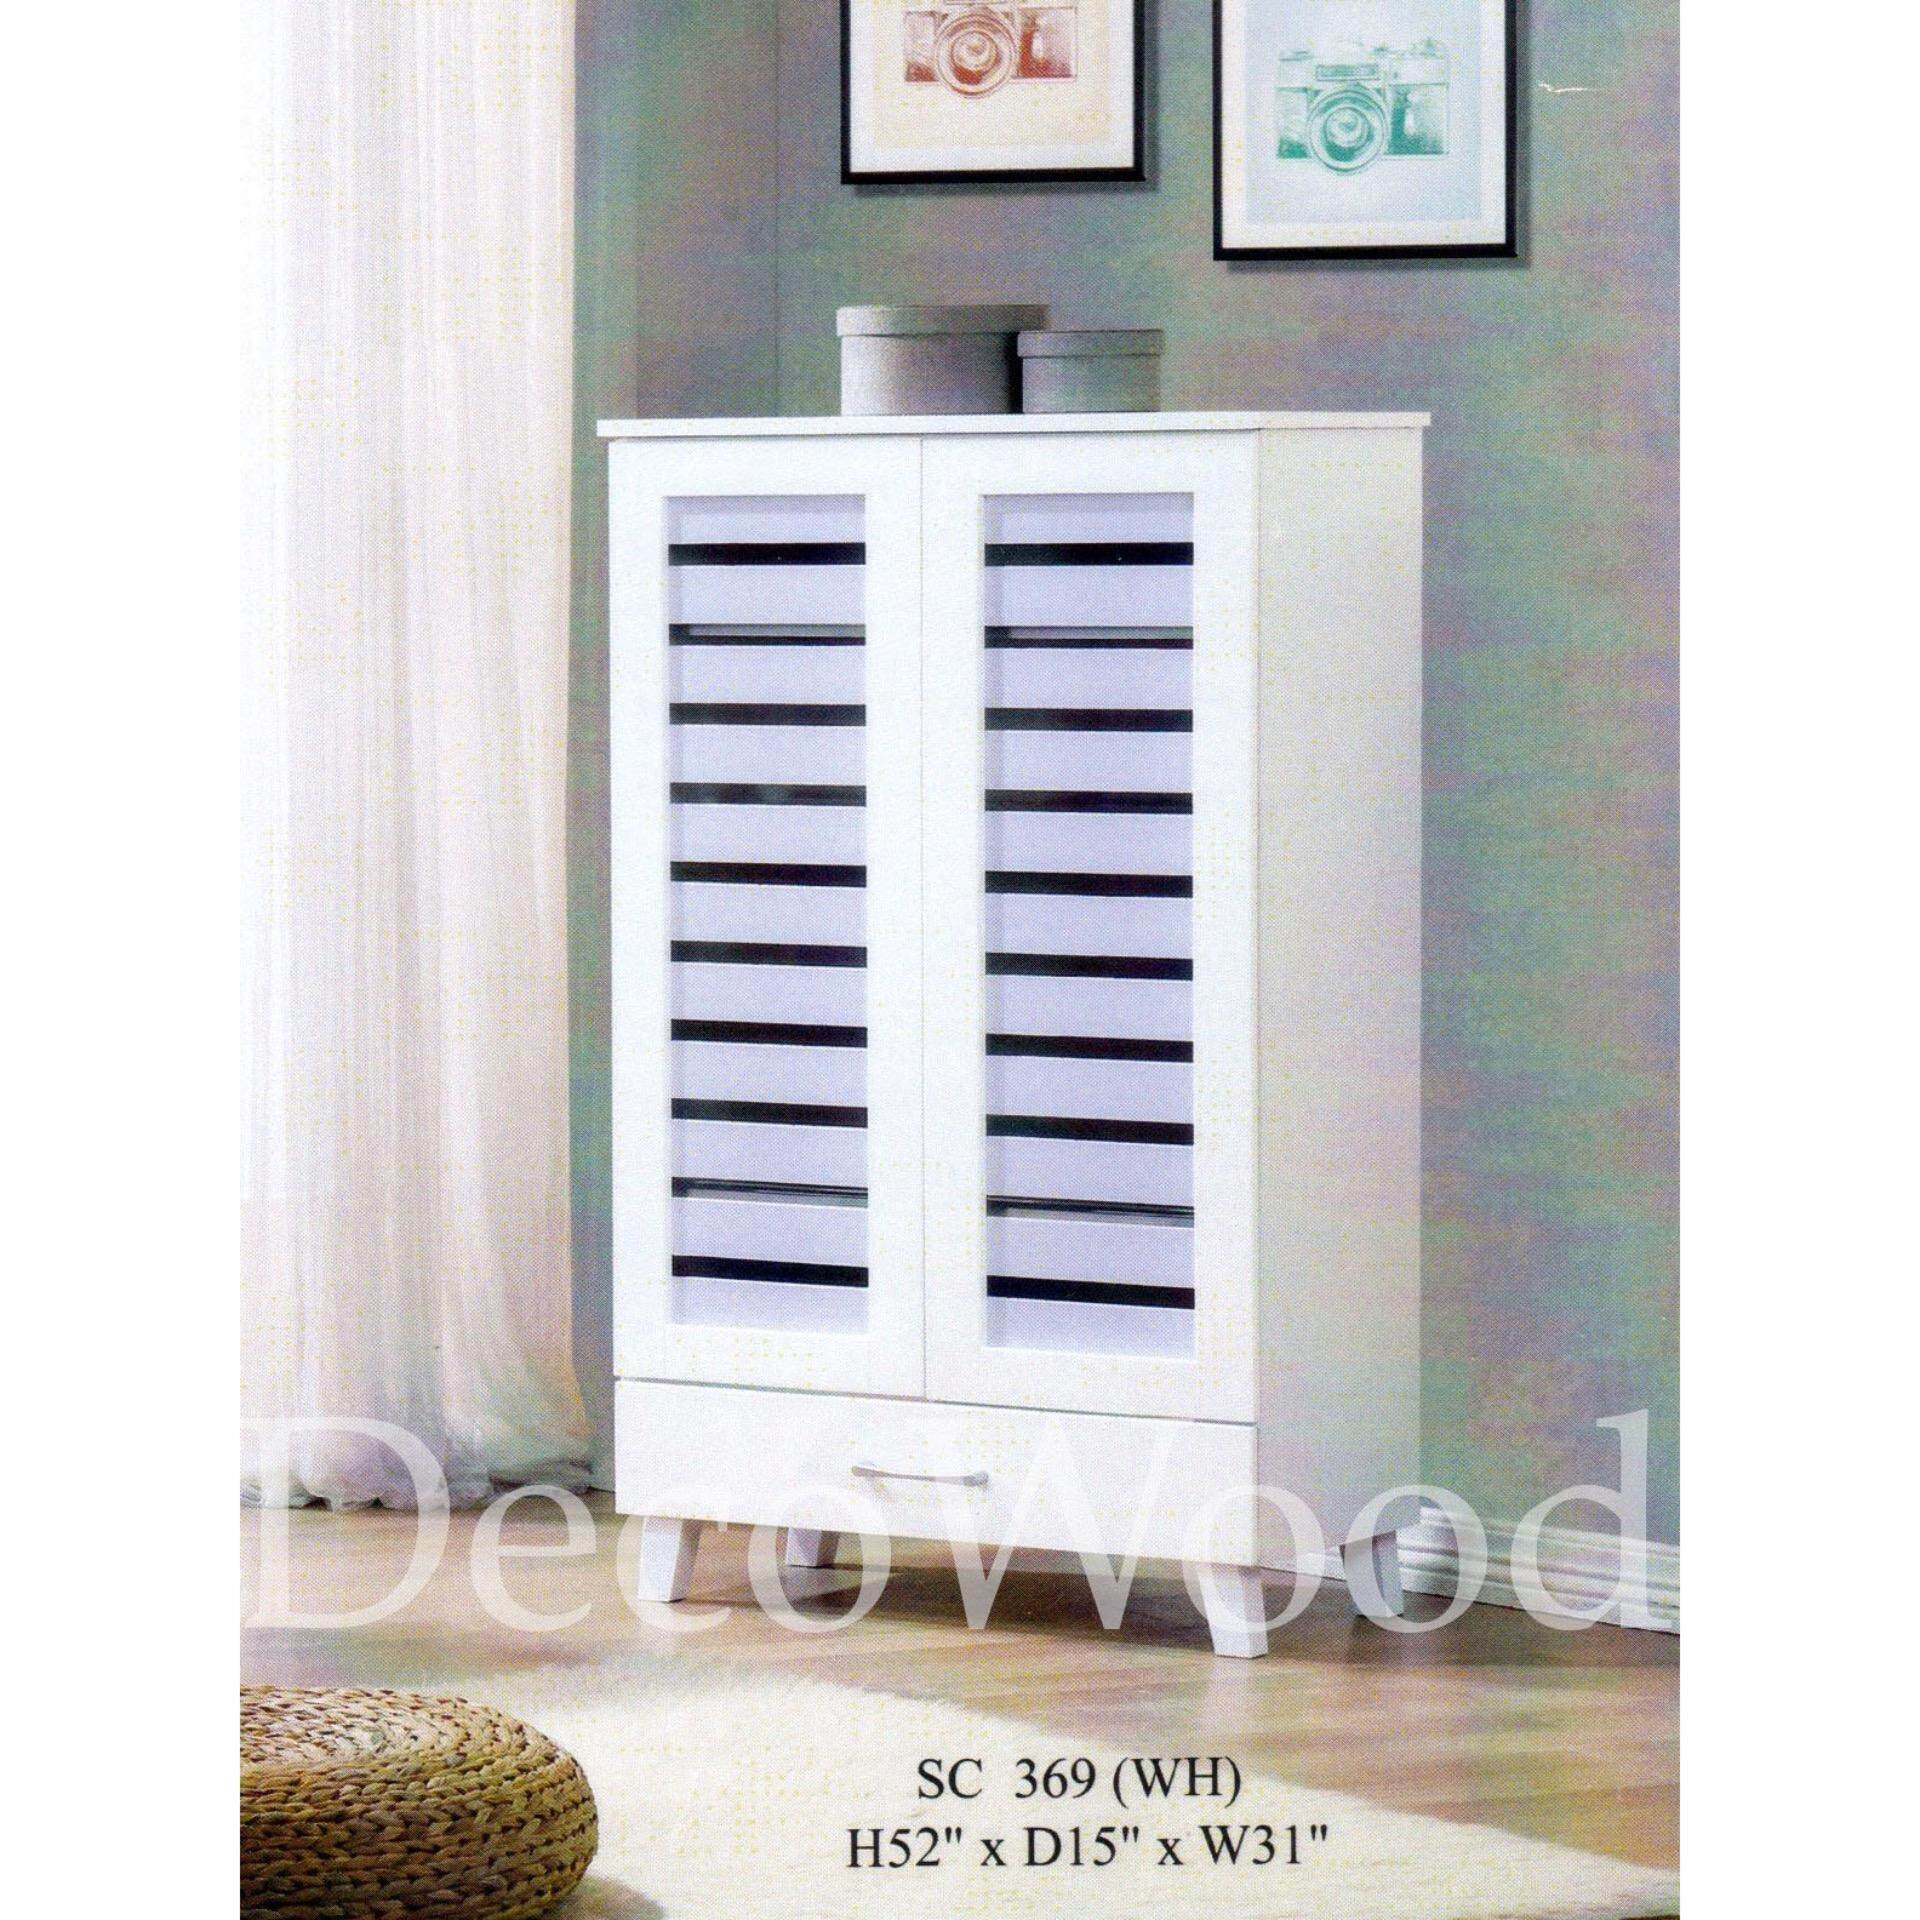 Ready-Fixed 2 Door 5 Layer Solid Wood Shoes Cabinet (White Colour) L787MM X W380MM X H1320MM Pre Order 2 Week